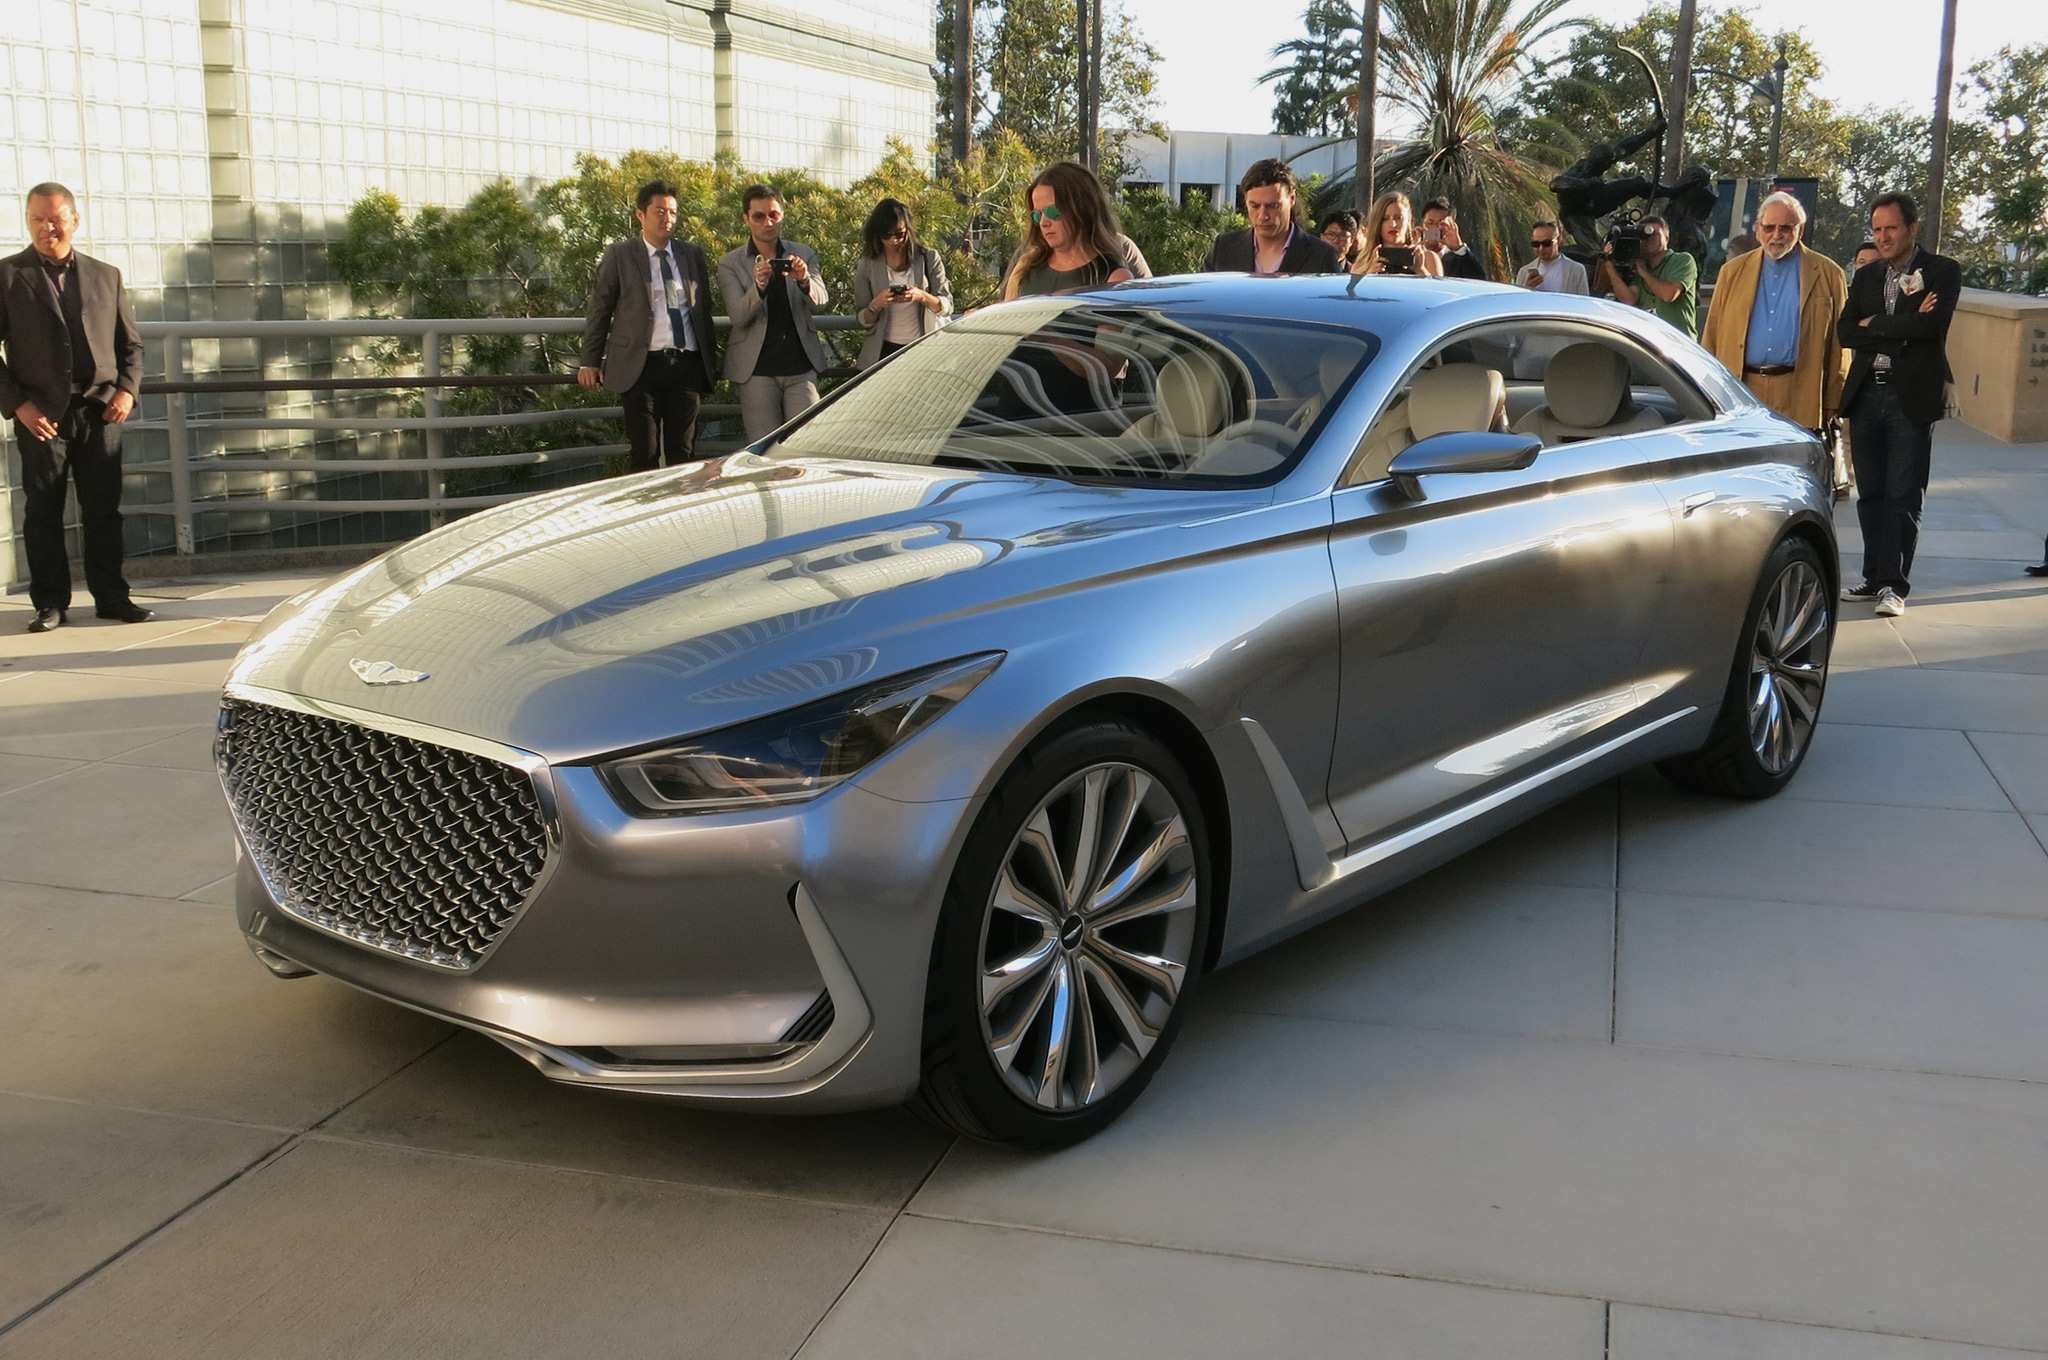 22 Gallery of Hyundai 2020 Vision Picture with Hyundai 2020 Vision